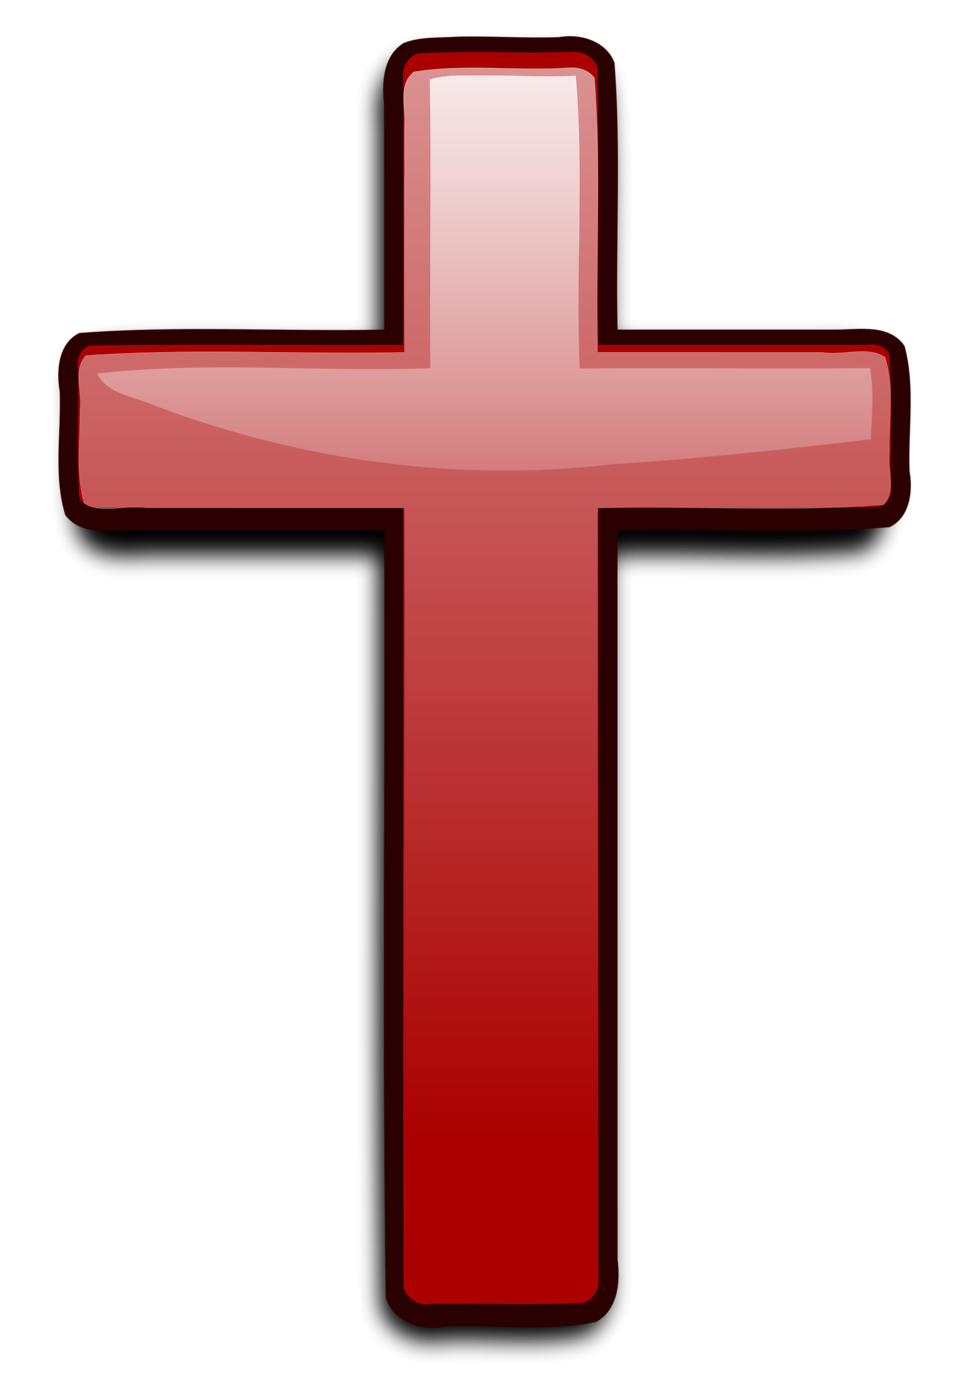 Christian Red Cross Symbol   Clipart Best